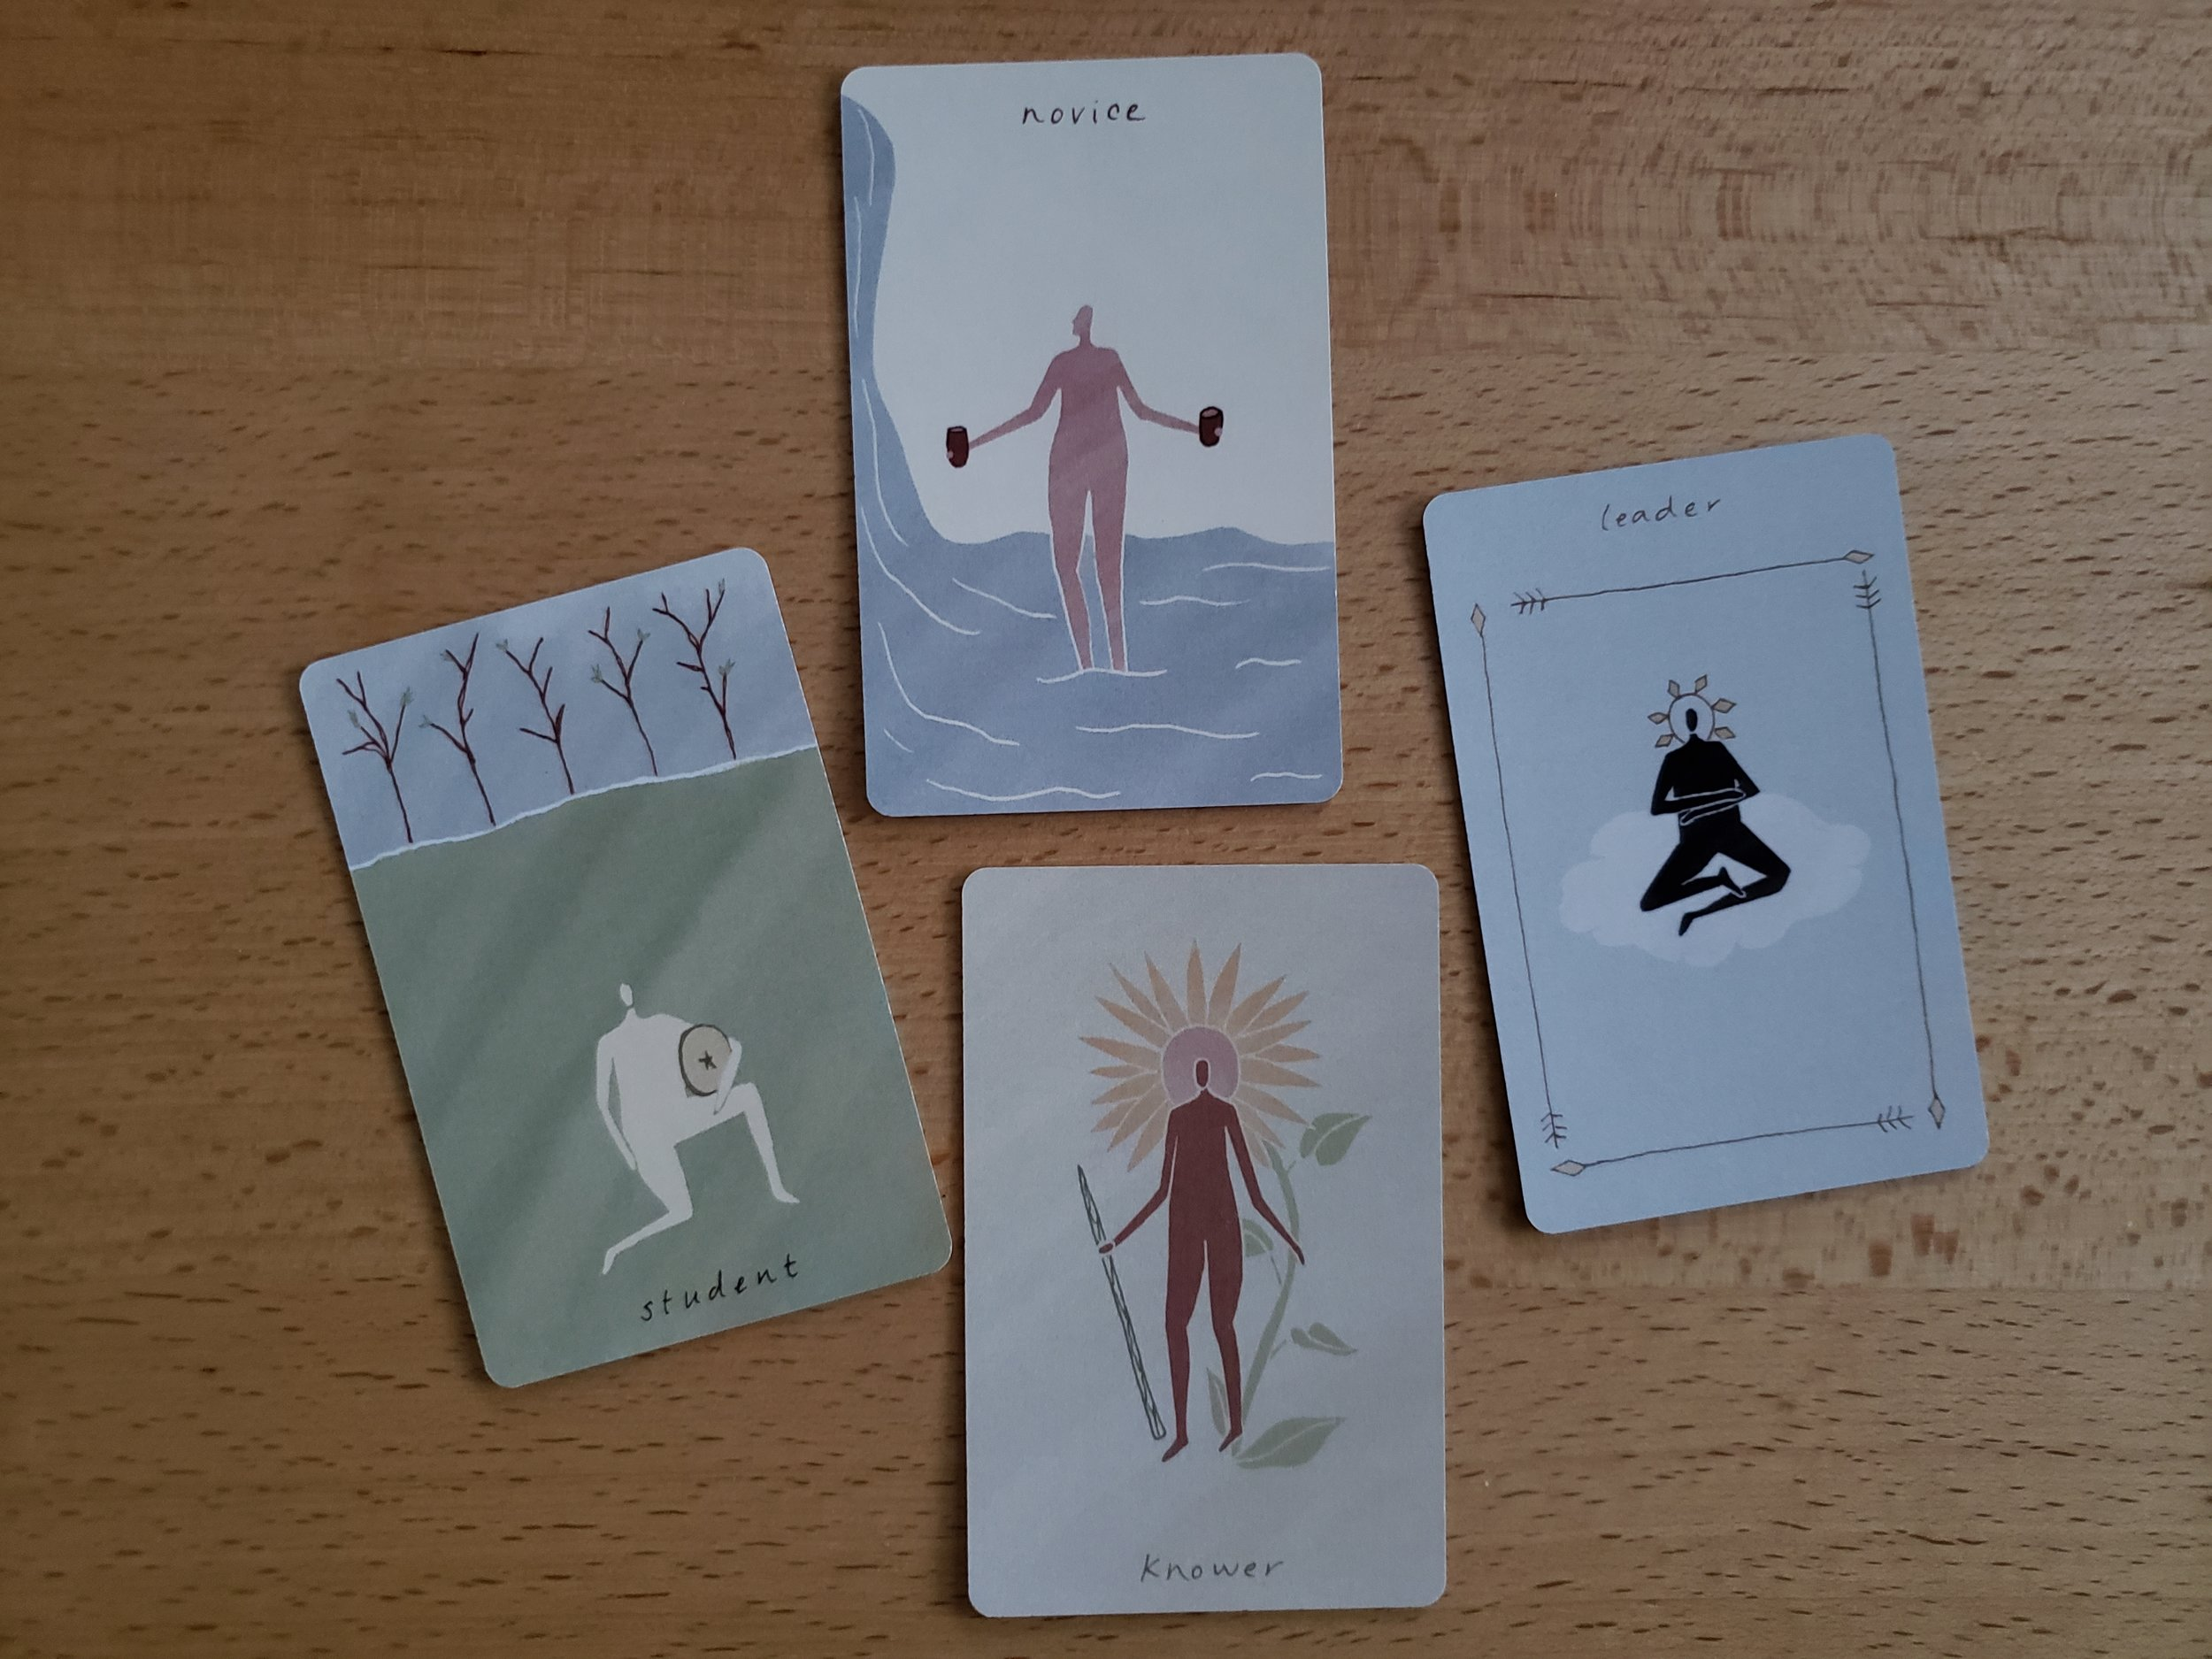 court cards from the Mesquite Tarot